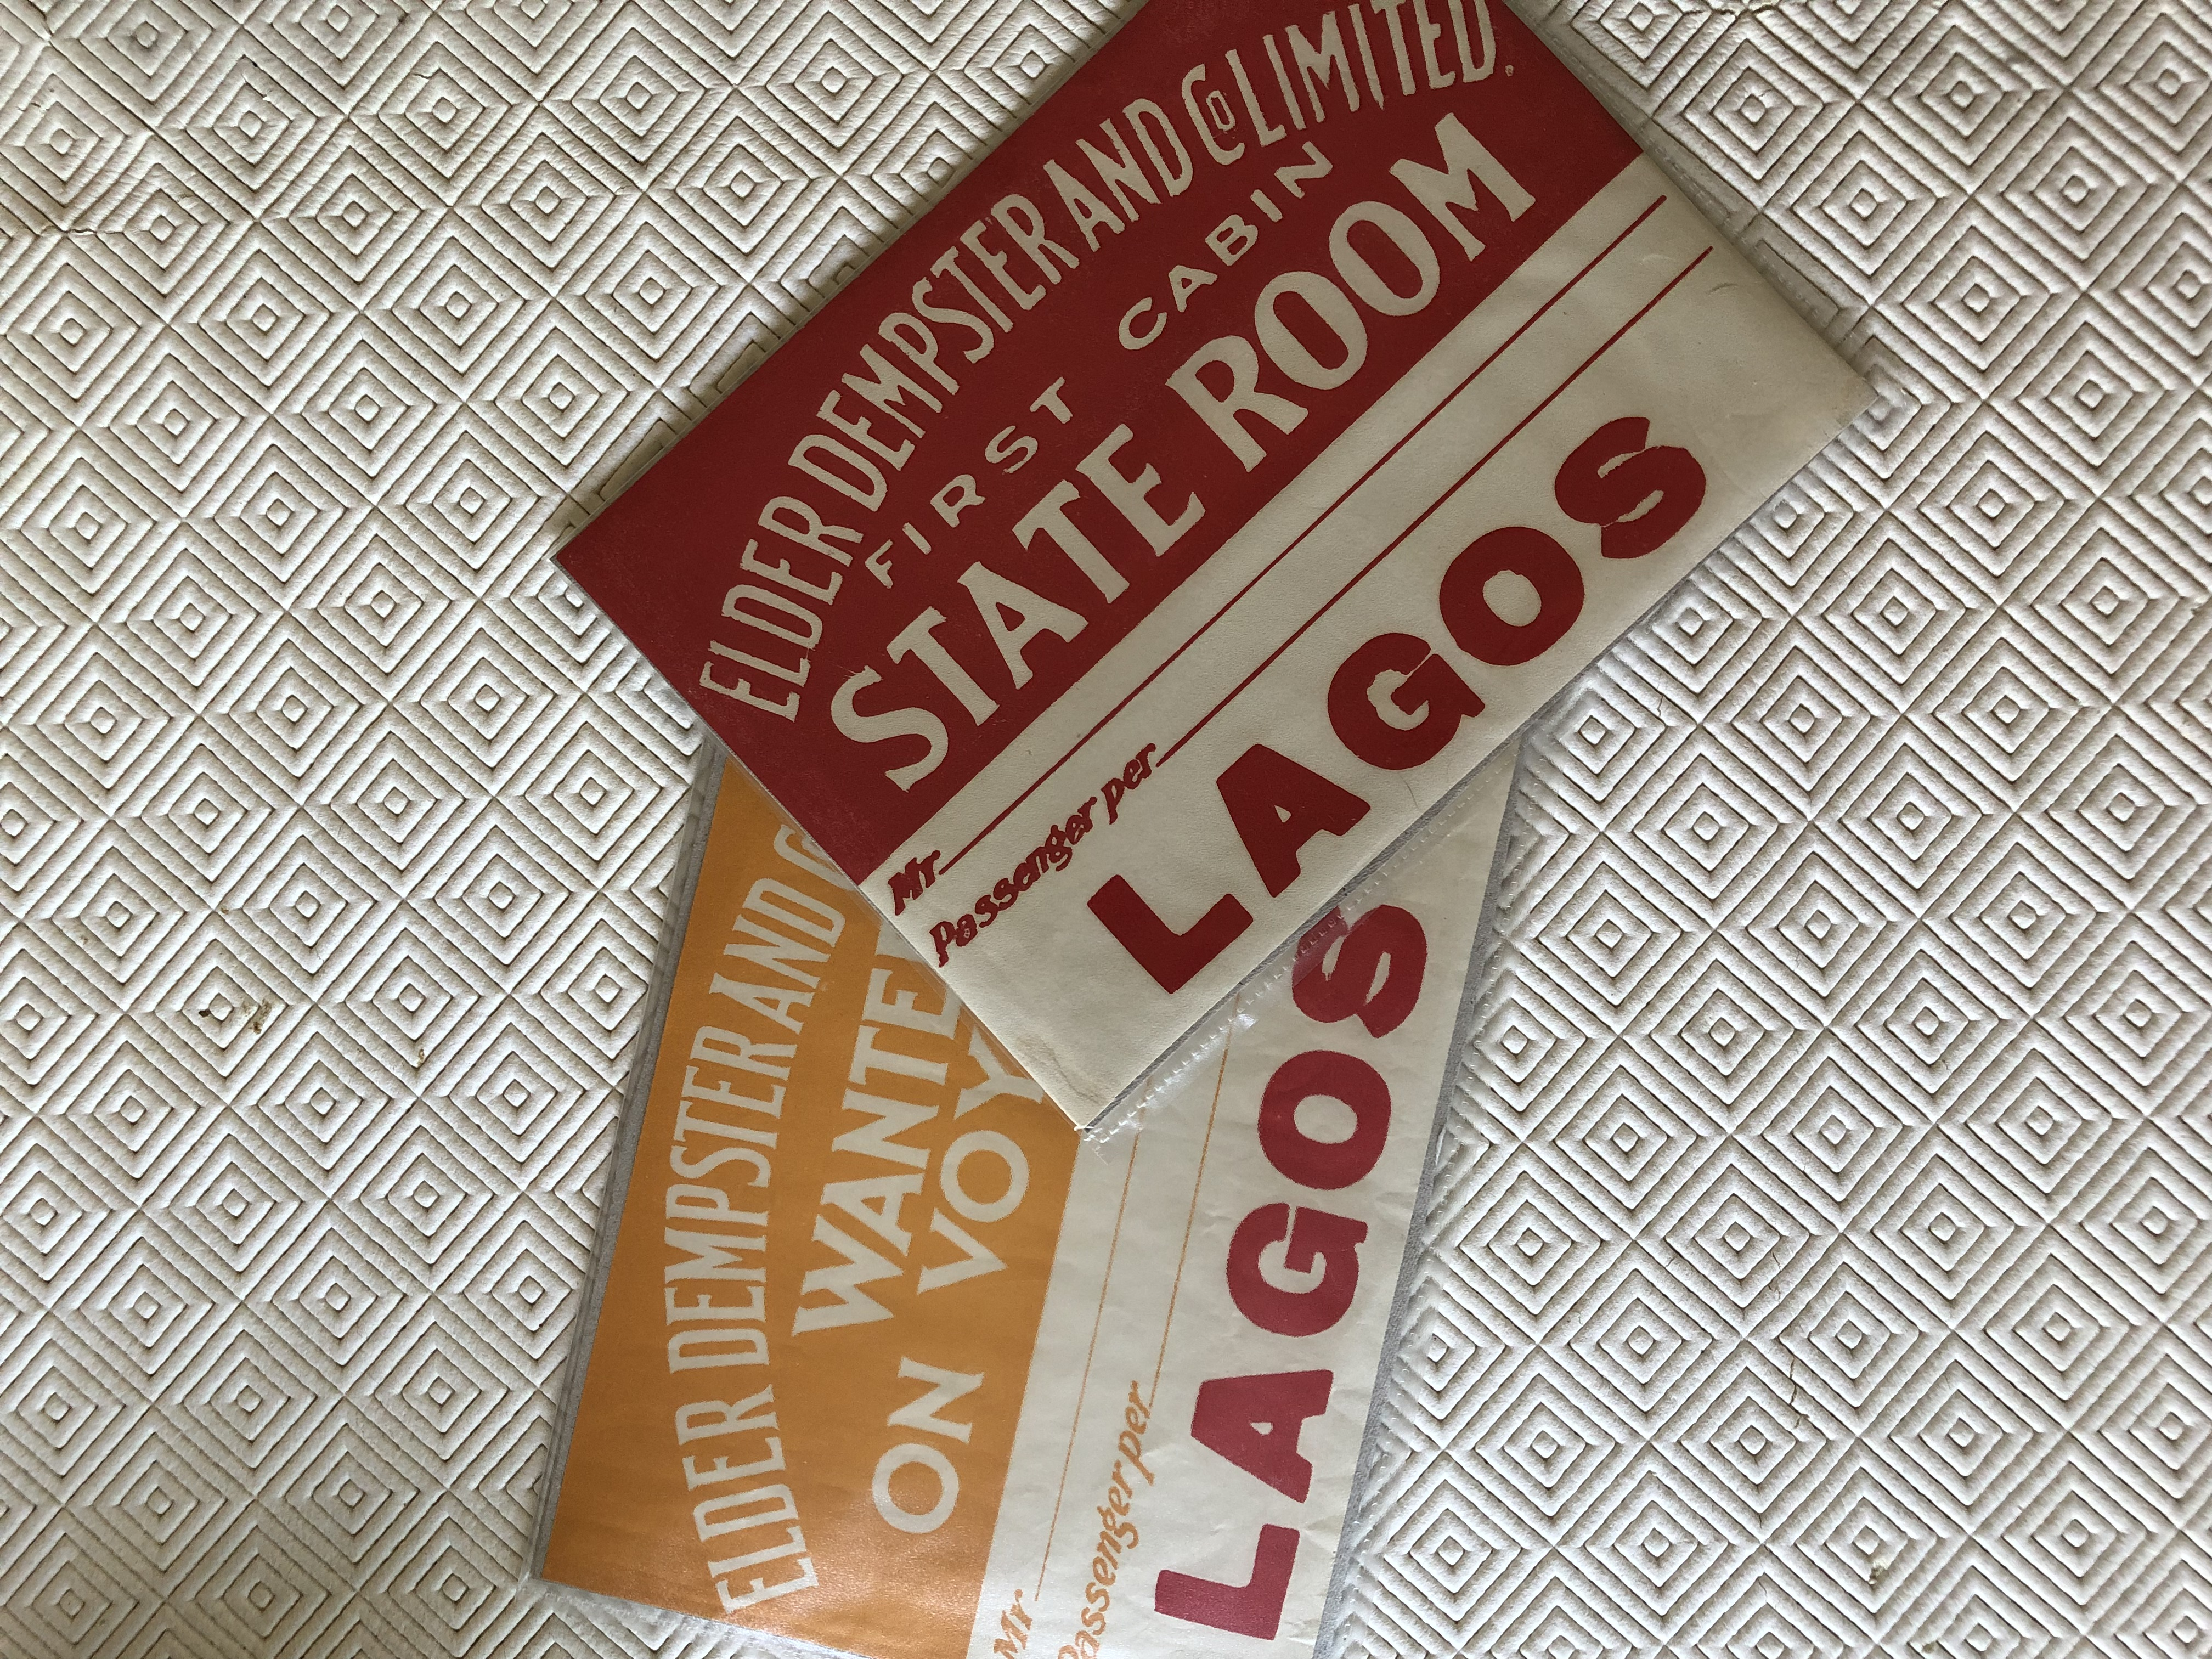 VERY RARE TO FIND EARLY LUGGAGE LABELS FROM THE ELDER DEMPSTER LINE